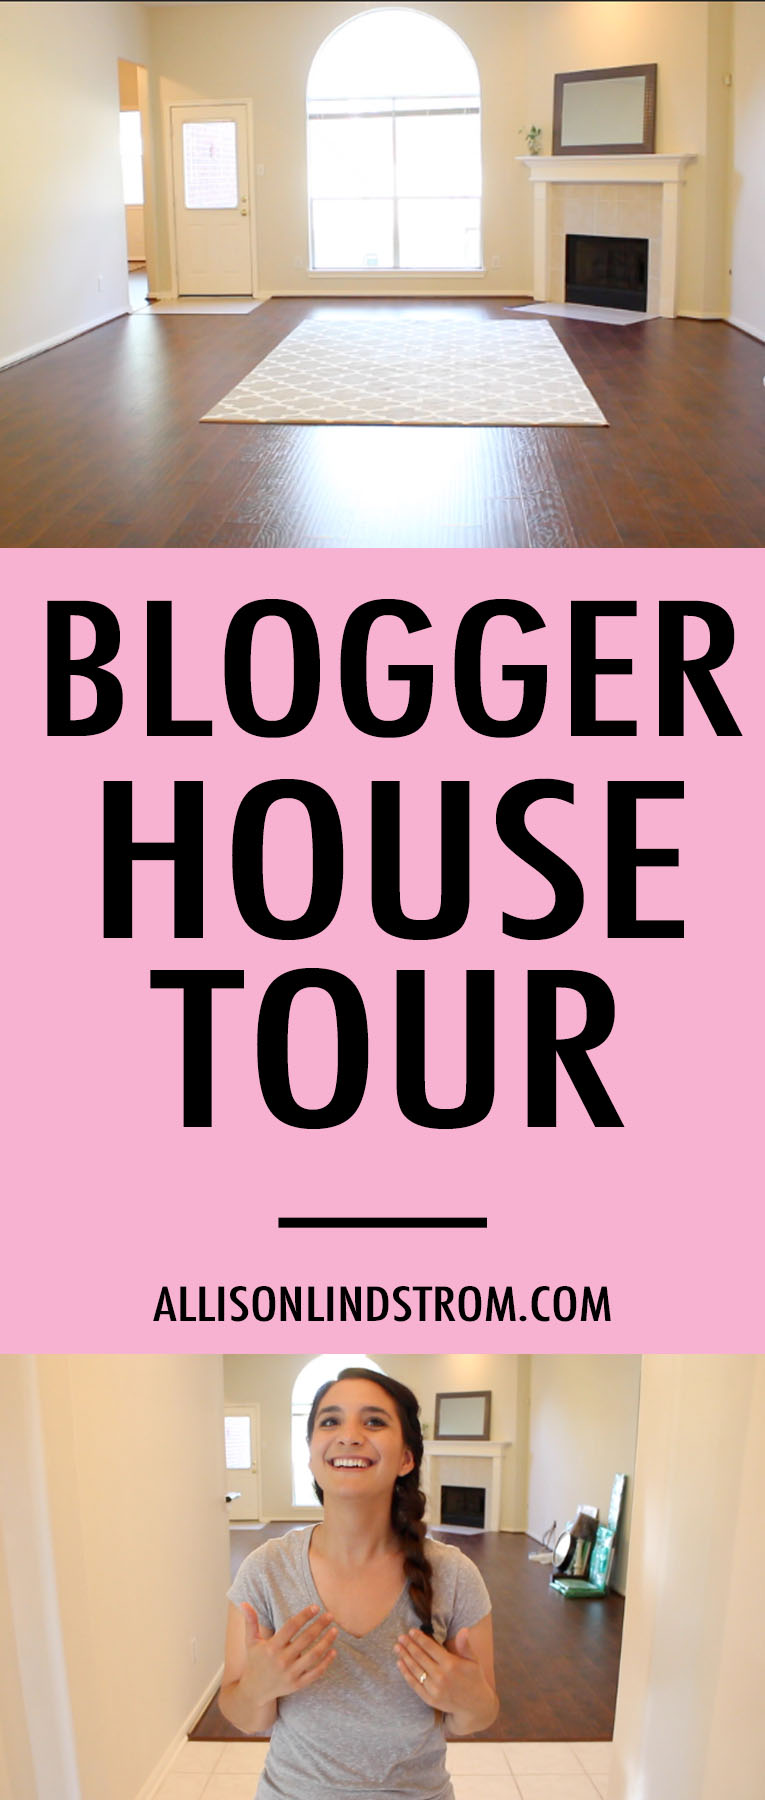 You guys asked for a house tour and I'm happy to oblige! Making money online as a blogger means that I've been fortunate enough to have passive income the entire time we were moving...even though I didn't work a single day! Hallelujah! If you're interested in starting a blog so you can have the same experience in a couple of years, check out this blog post for my free blog resources.